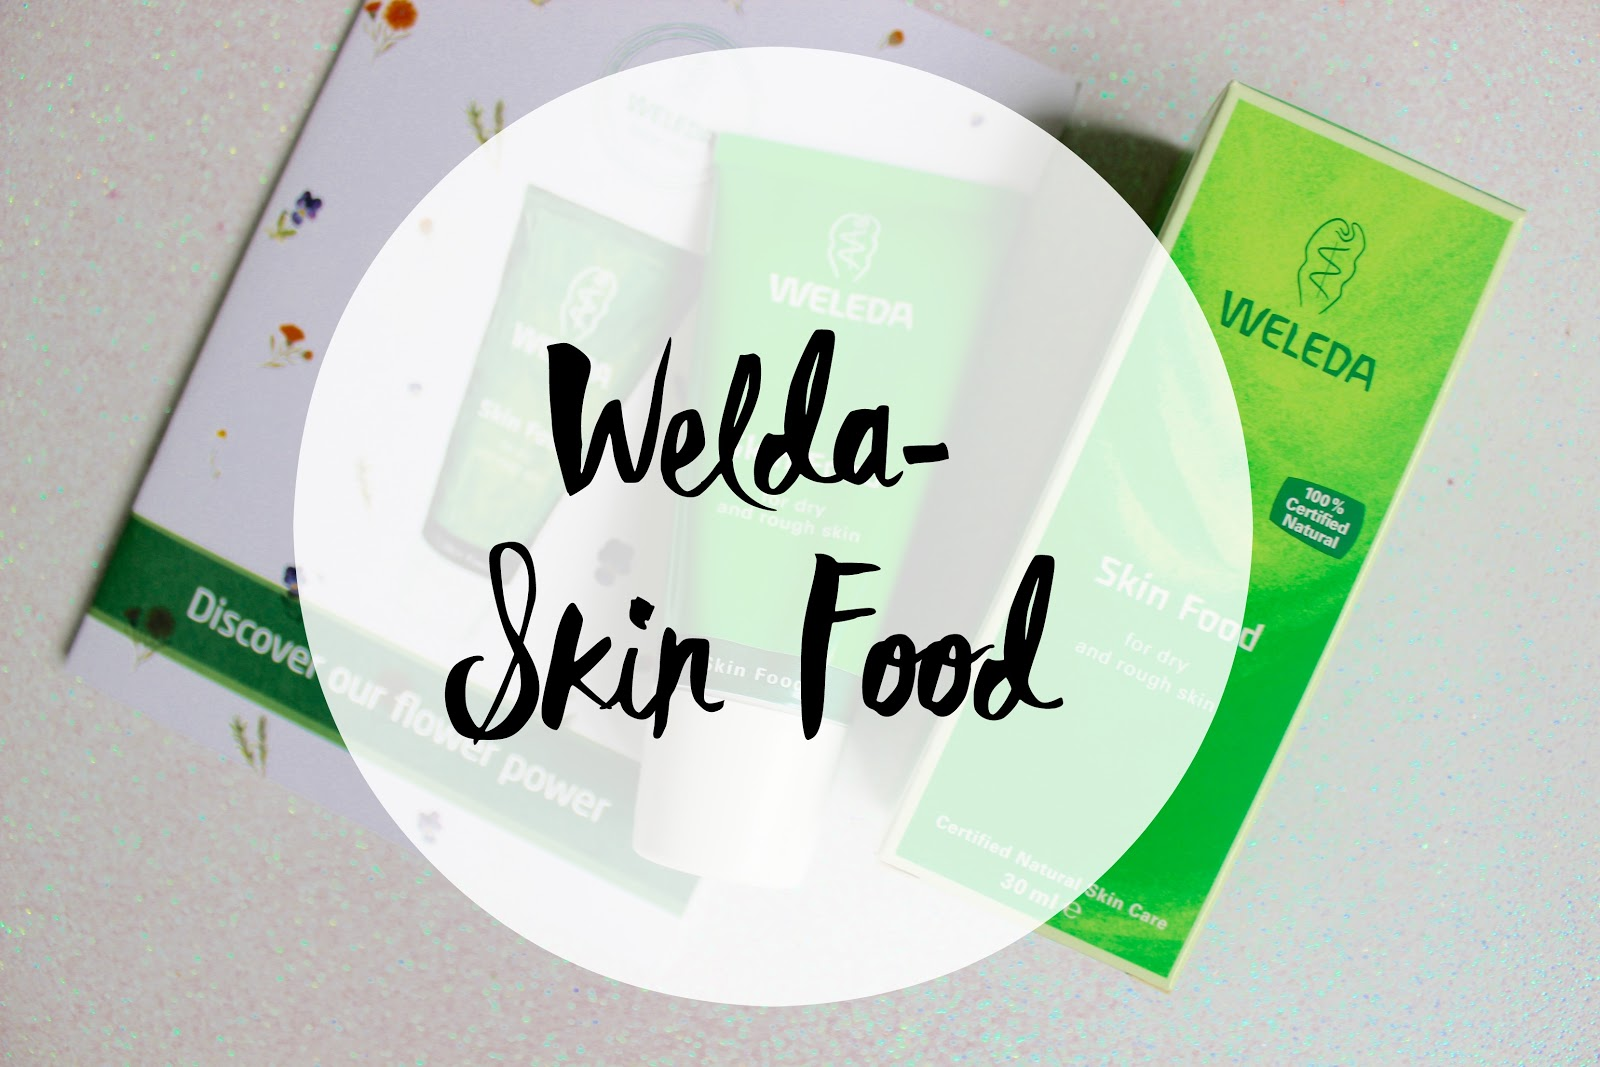 welda, welds skin food, dry skin